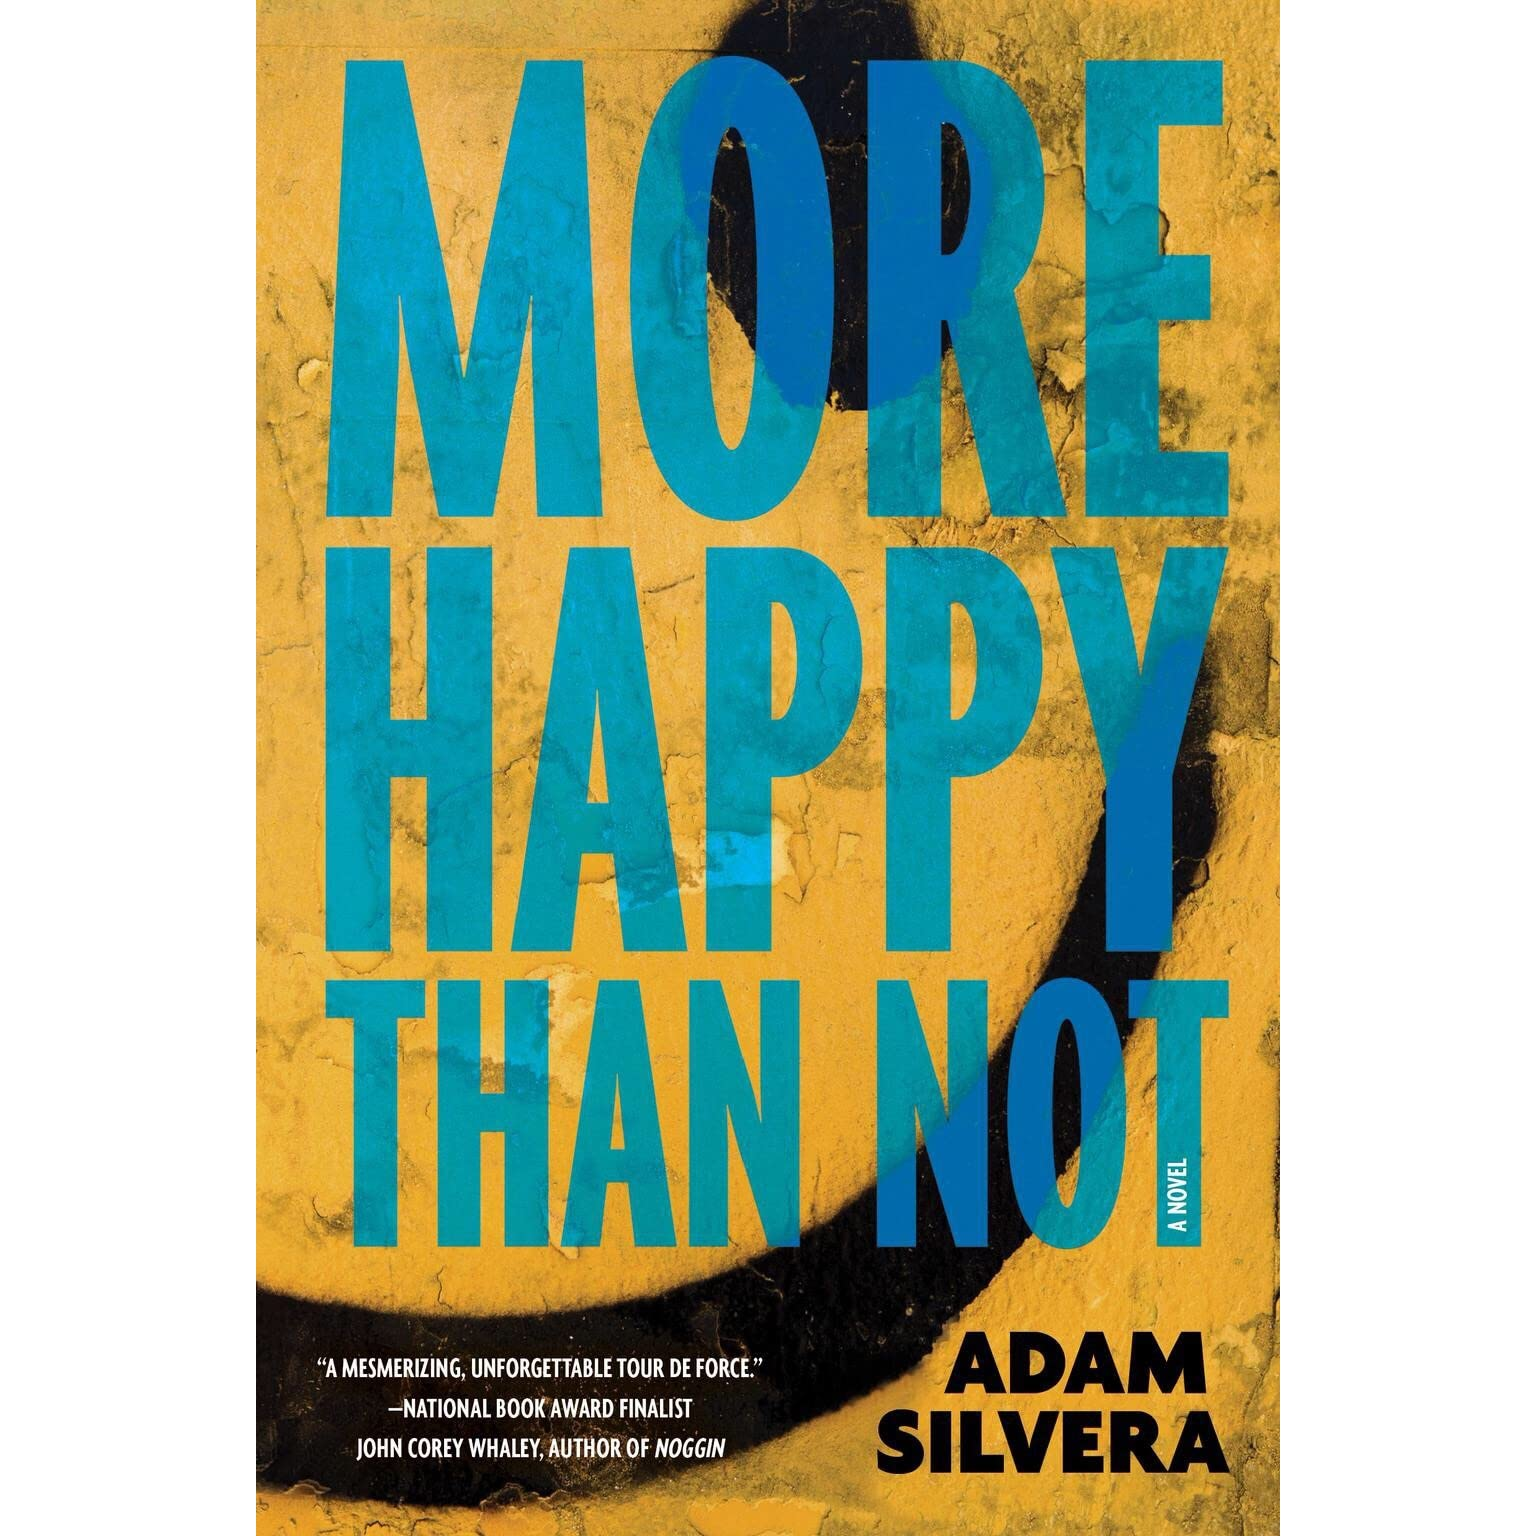 How To Make A Book Cover Look Old And Worn ~ More happy than not by adam silvera